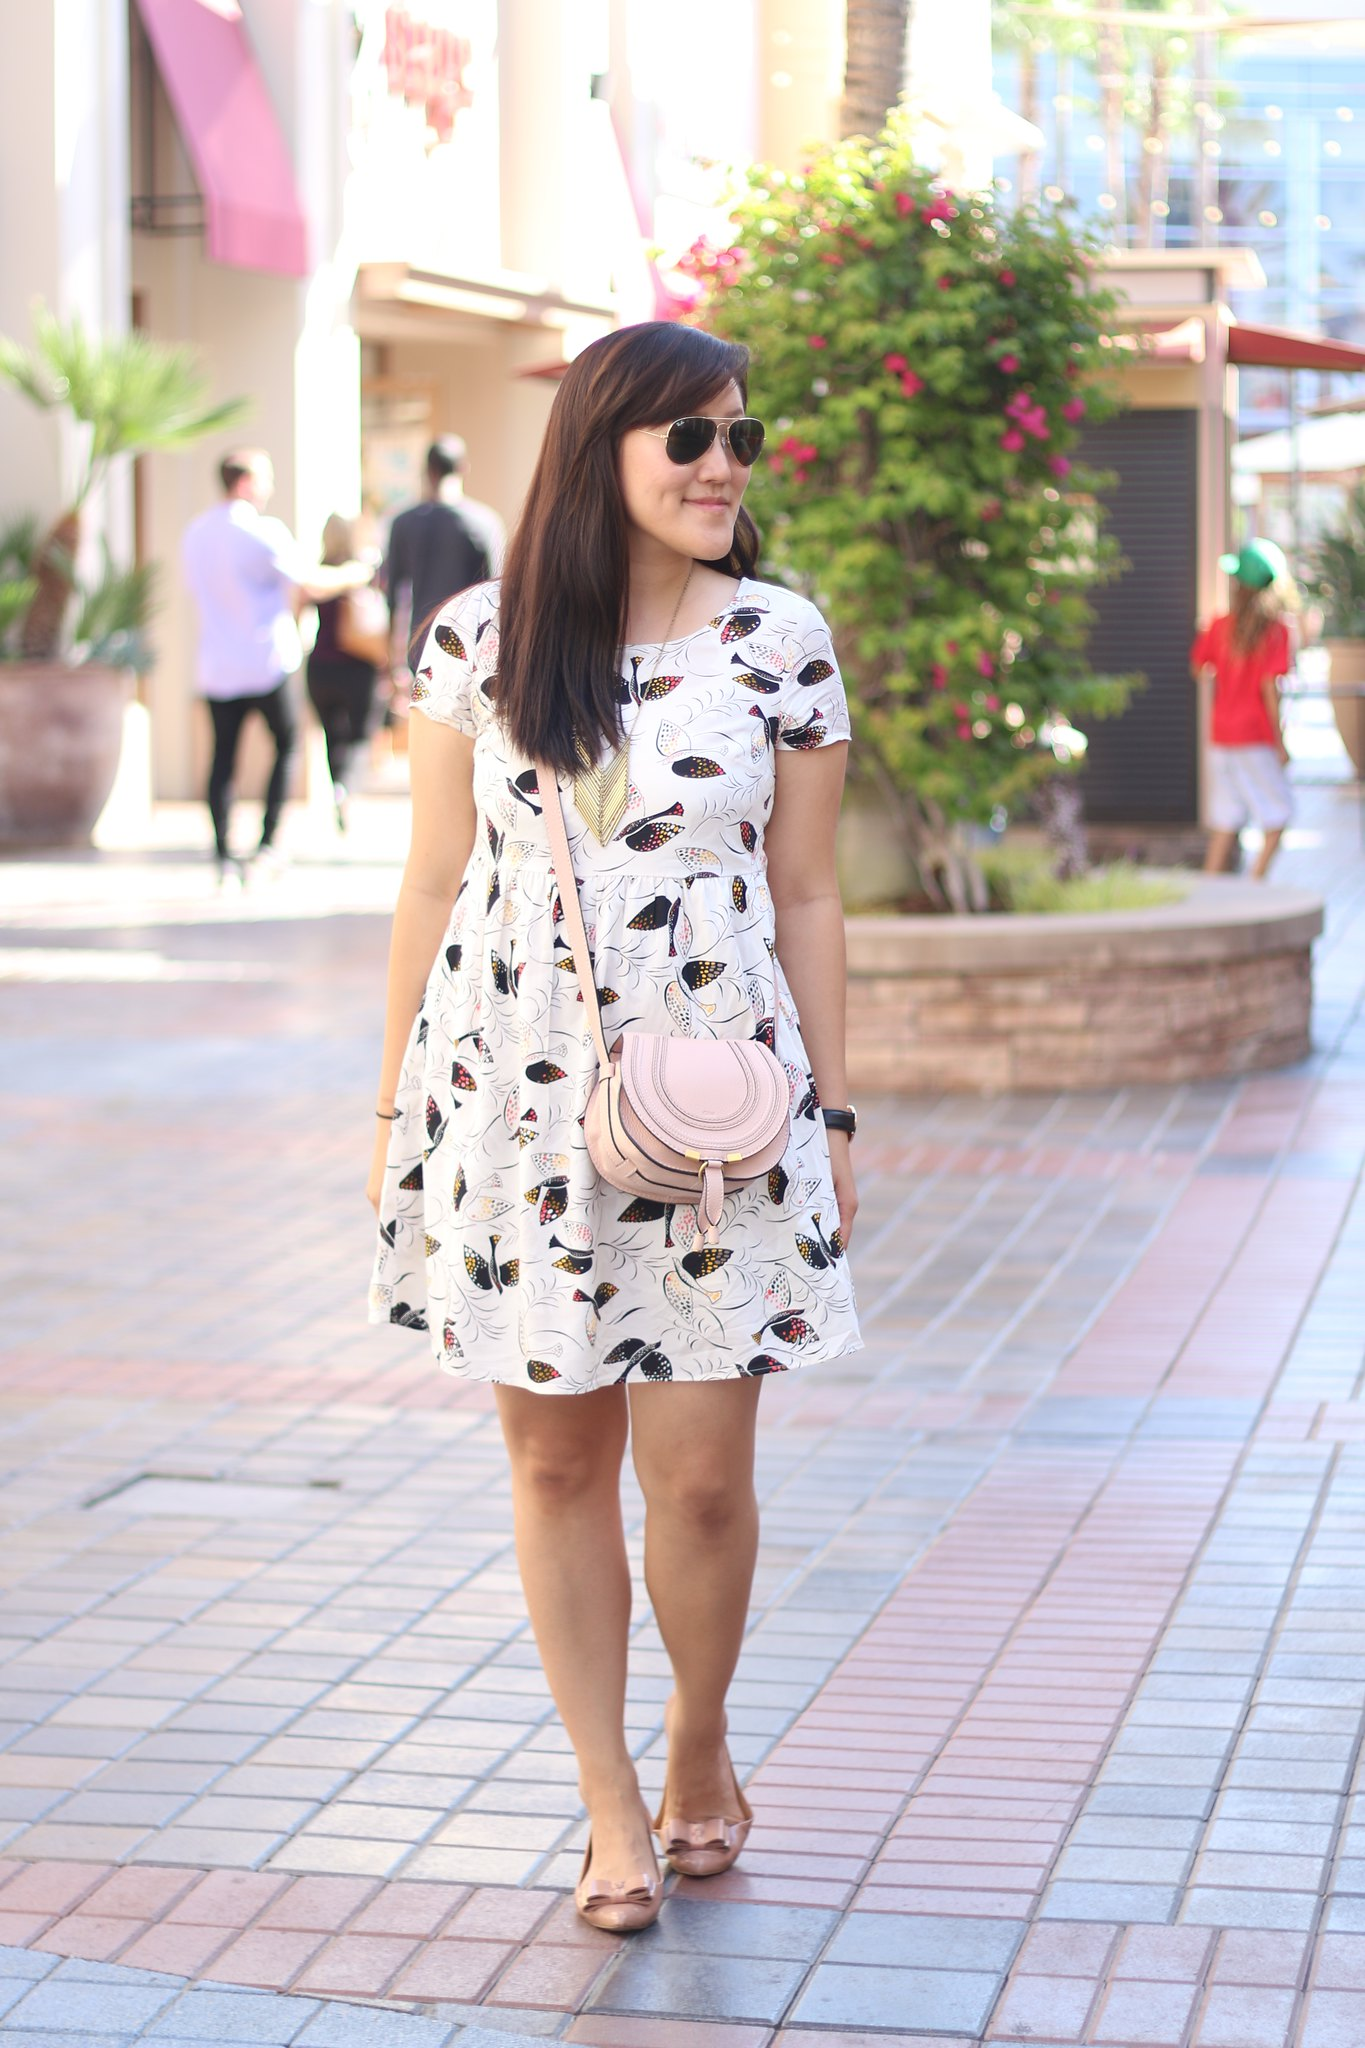 simplyxclassic, old navy, old navy style, #oldnavystyle, crew flats, bird dress, summer dress, blogger, fashion blogger, mommy blogger, style blog,